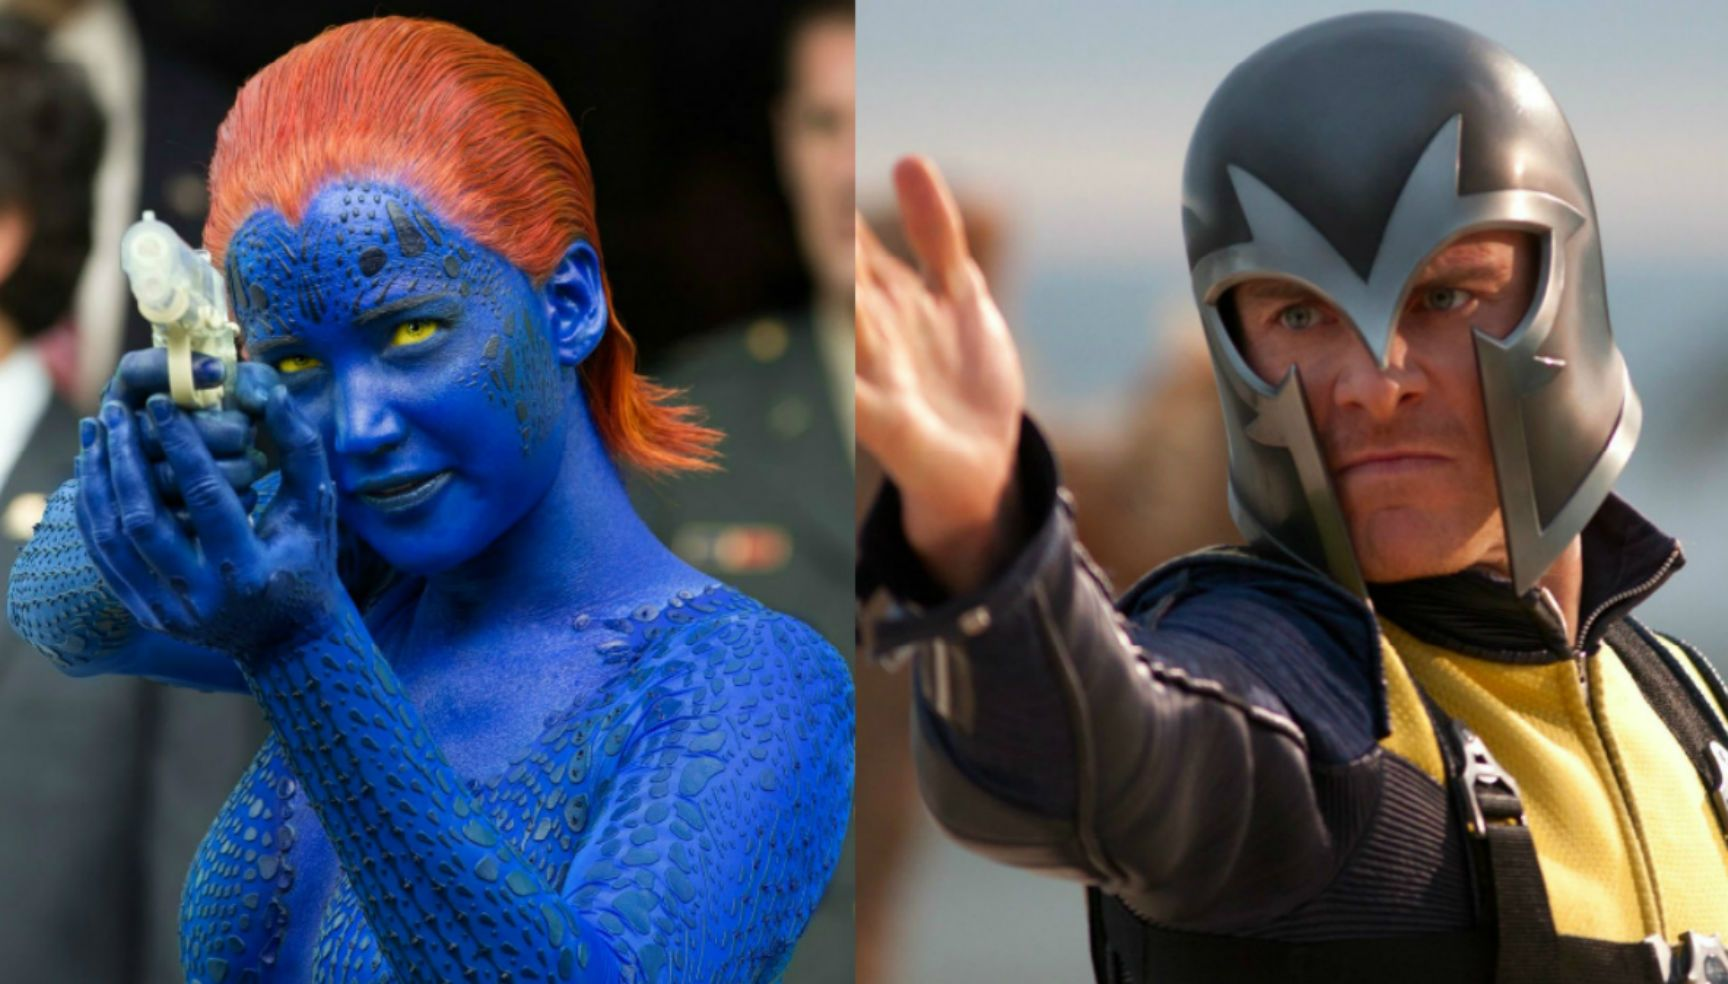 15 Things You Didn't Know About Mystique